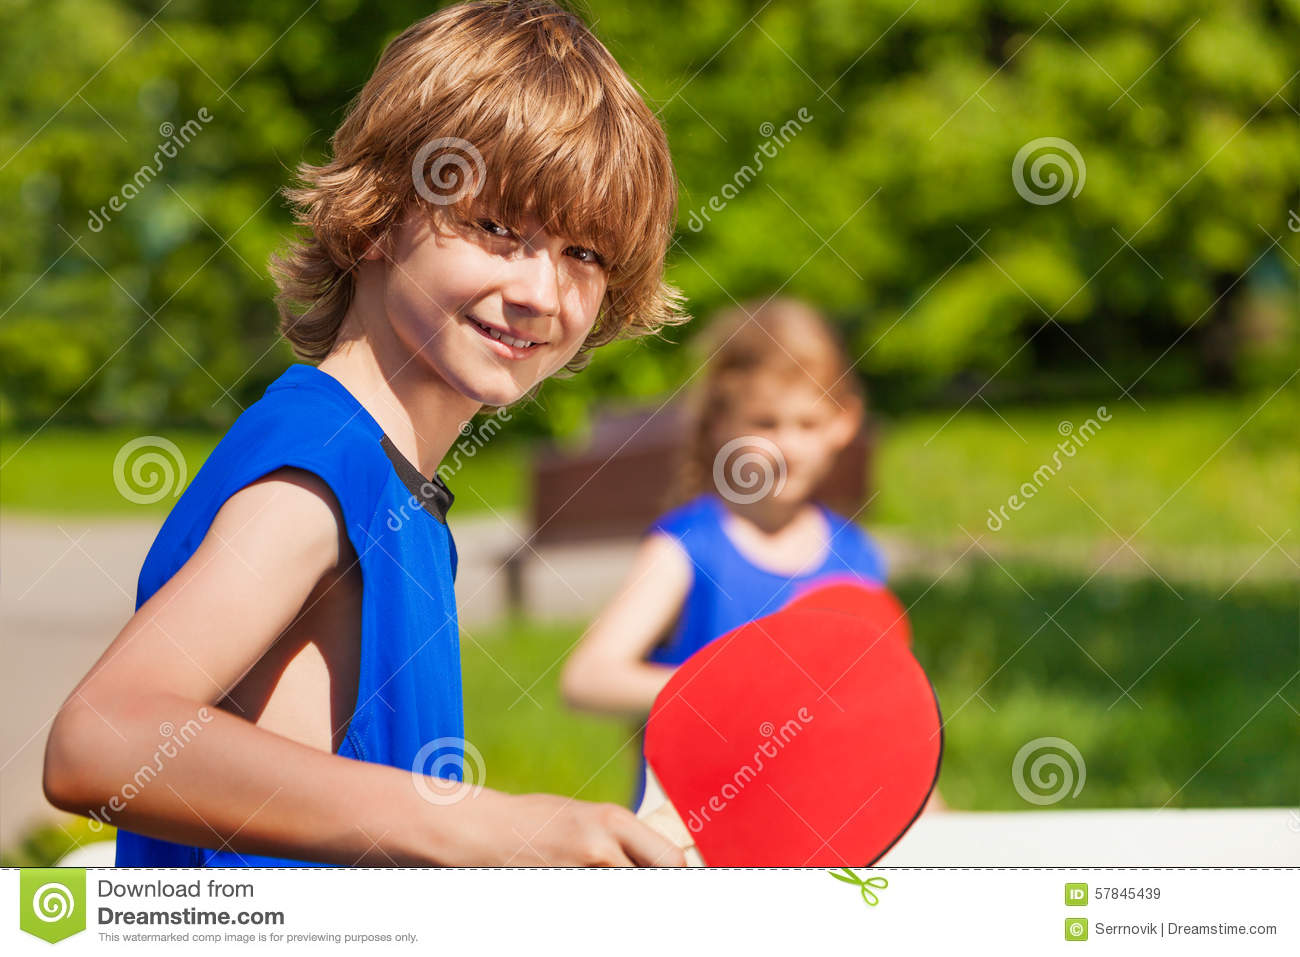 girls and boys playing sport together essay Tired hispanic girl and college education  here are three examples of common  college application essay topics that  many high school students play sports, so  it's understandable that  of people who are going to be living together and  learning together  here's why that isn't a great idea for our kids.